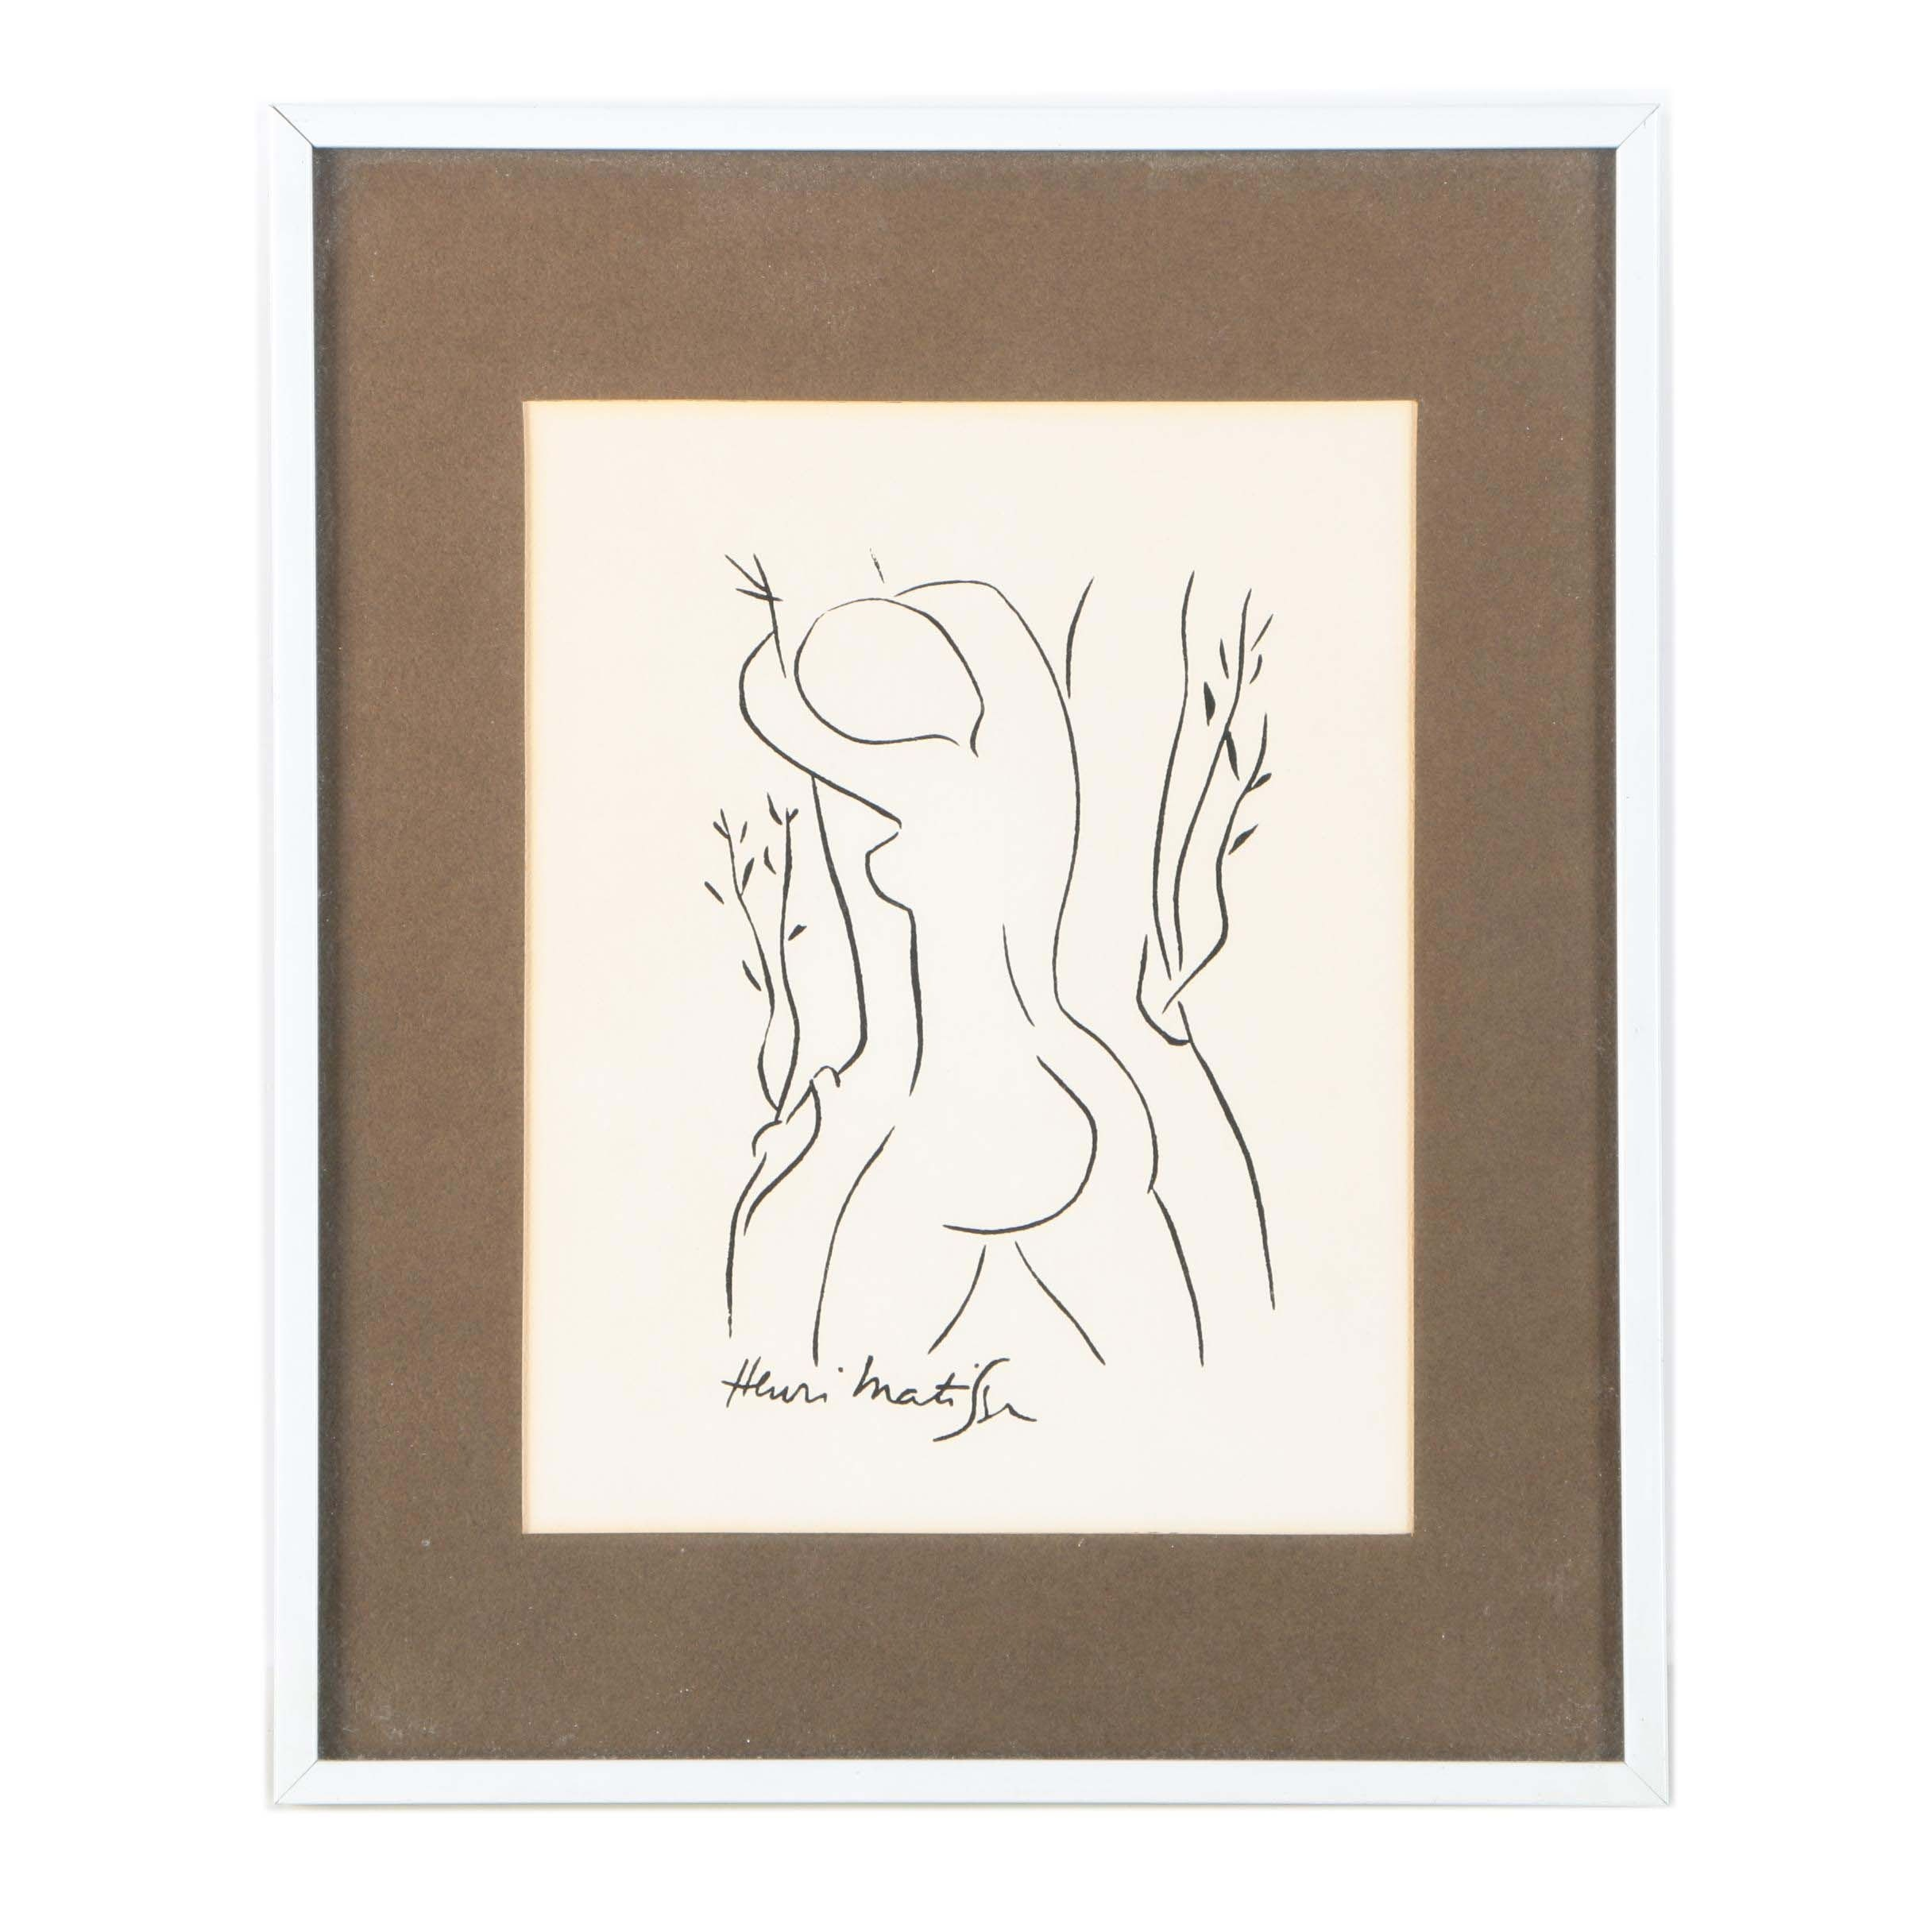 "Serigraph After Henri Matisse's Drawing ""Pasiphae Embracing an Olive Tree"""